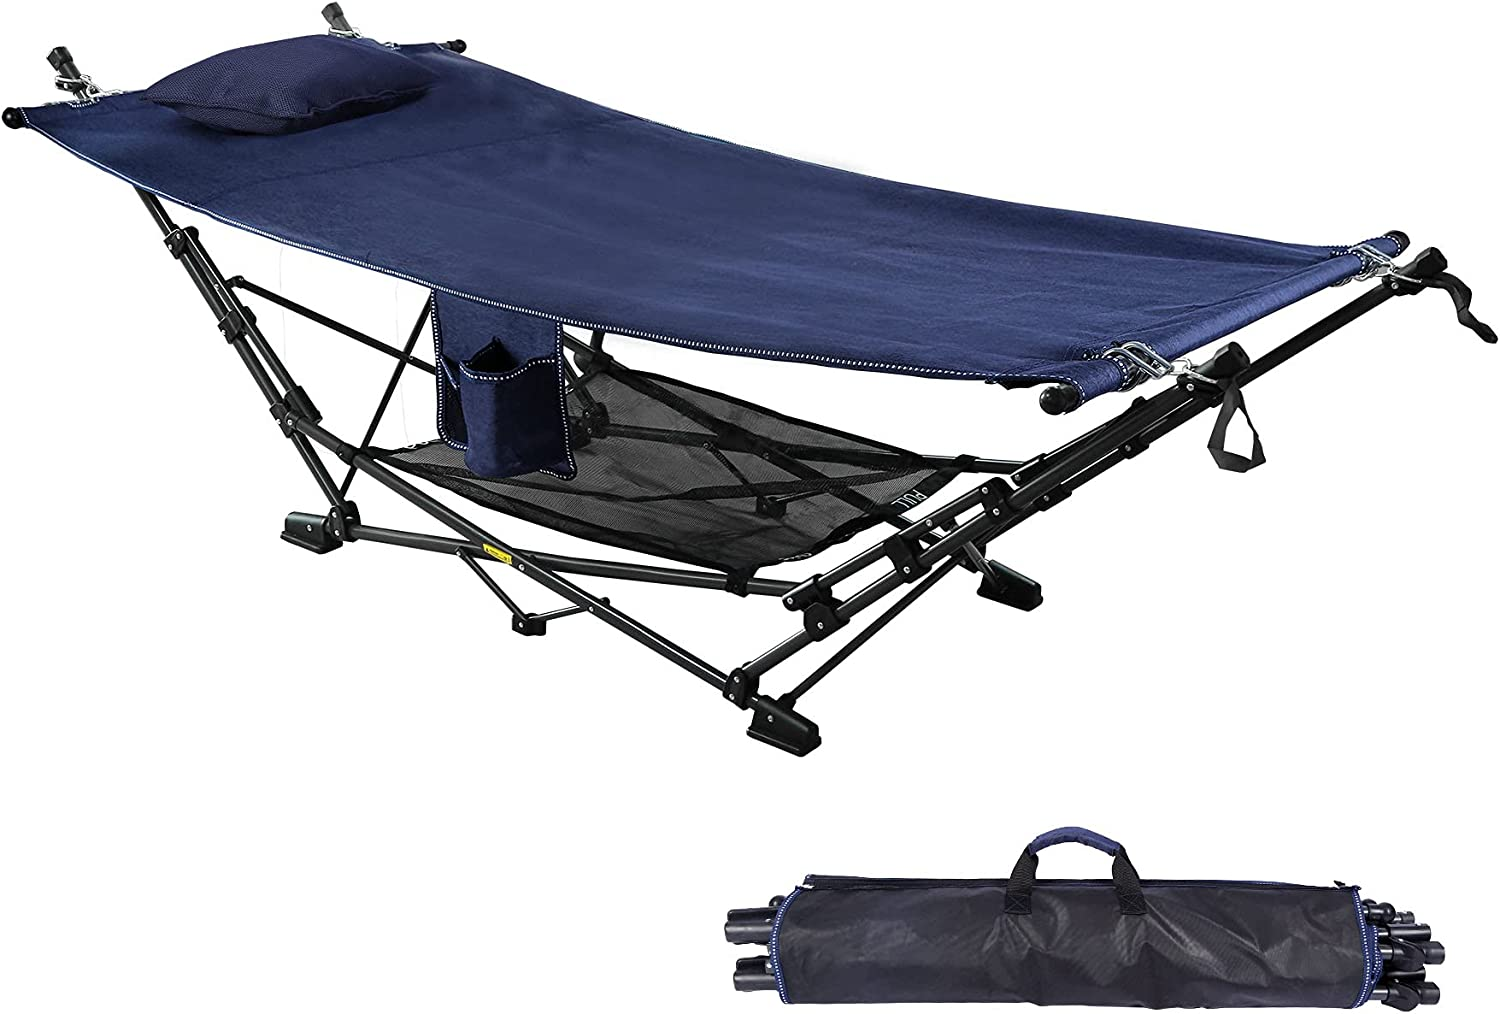 RedSwing OFFicial site Portable Folding Hammock Stand with Fixed price for sale Foldab Collapsible